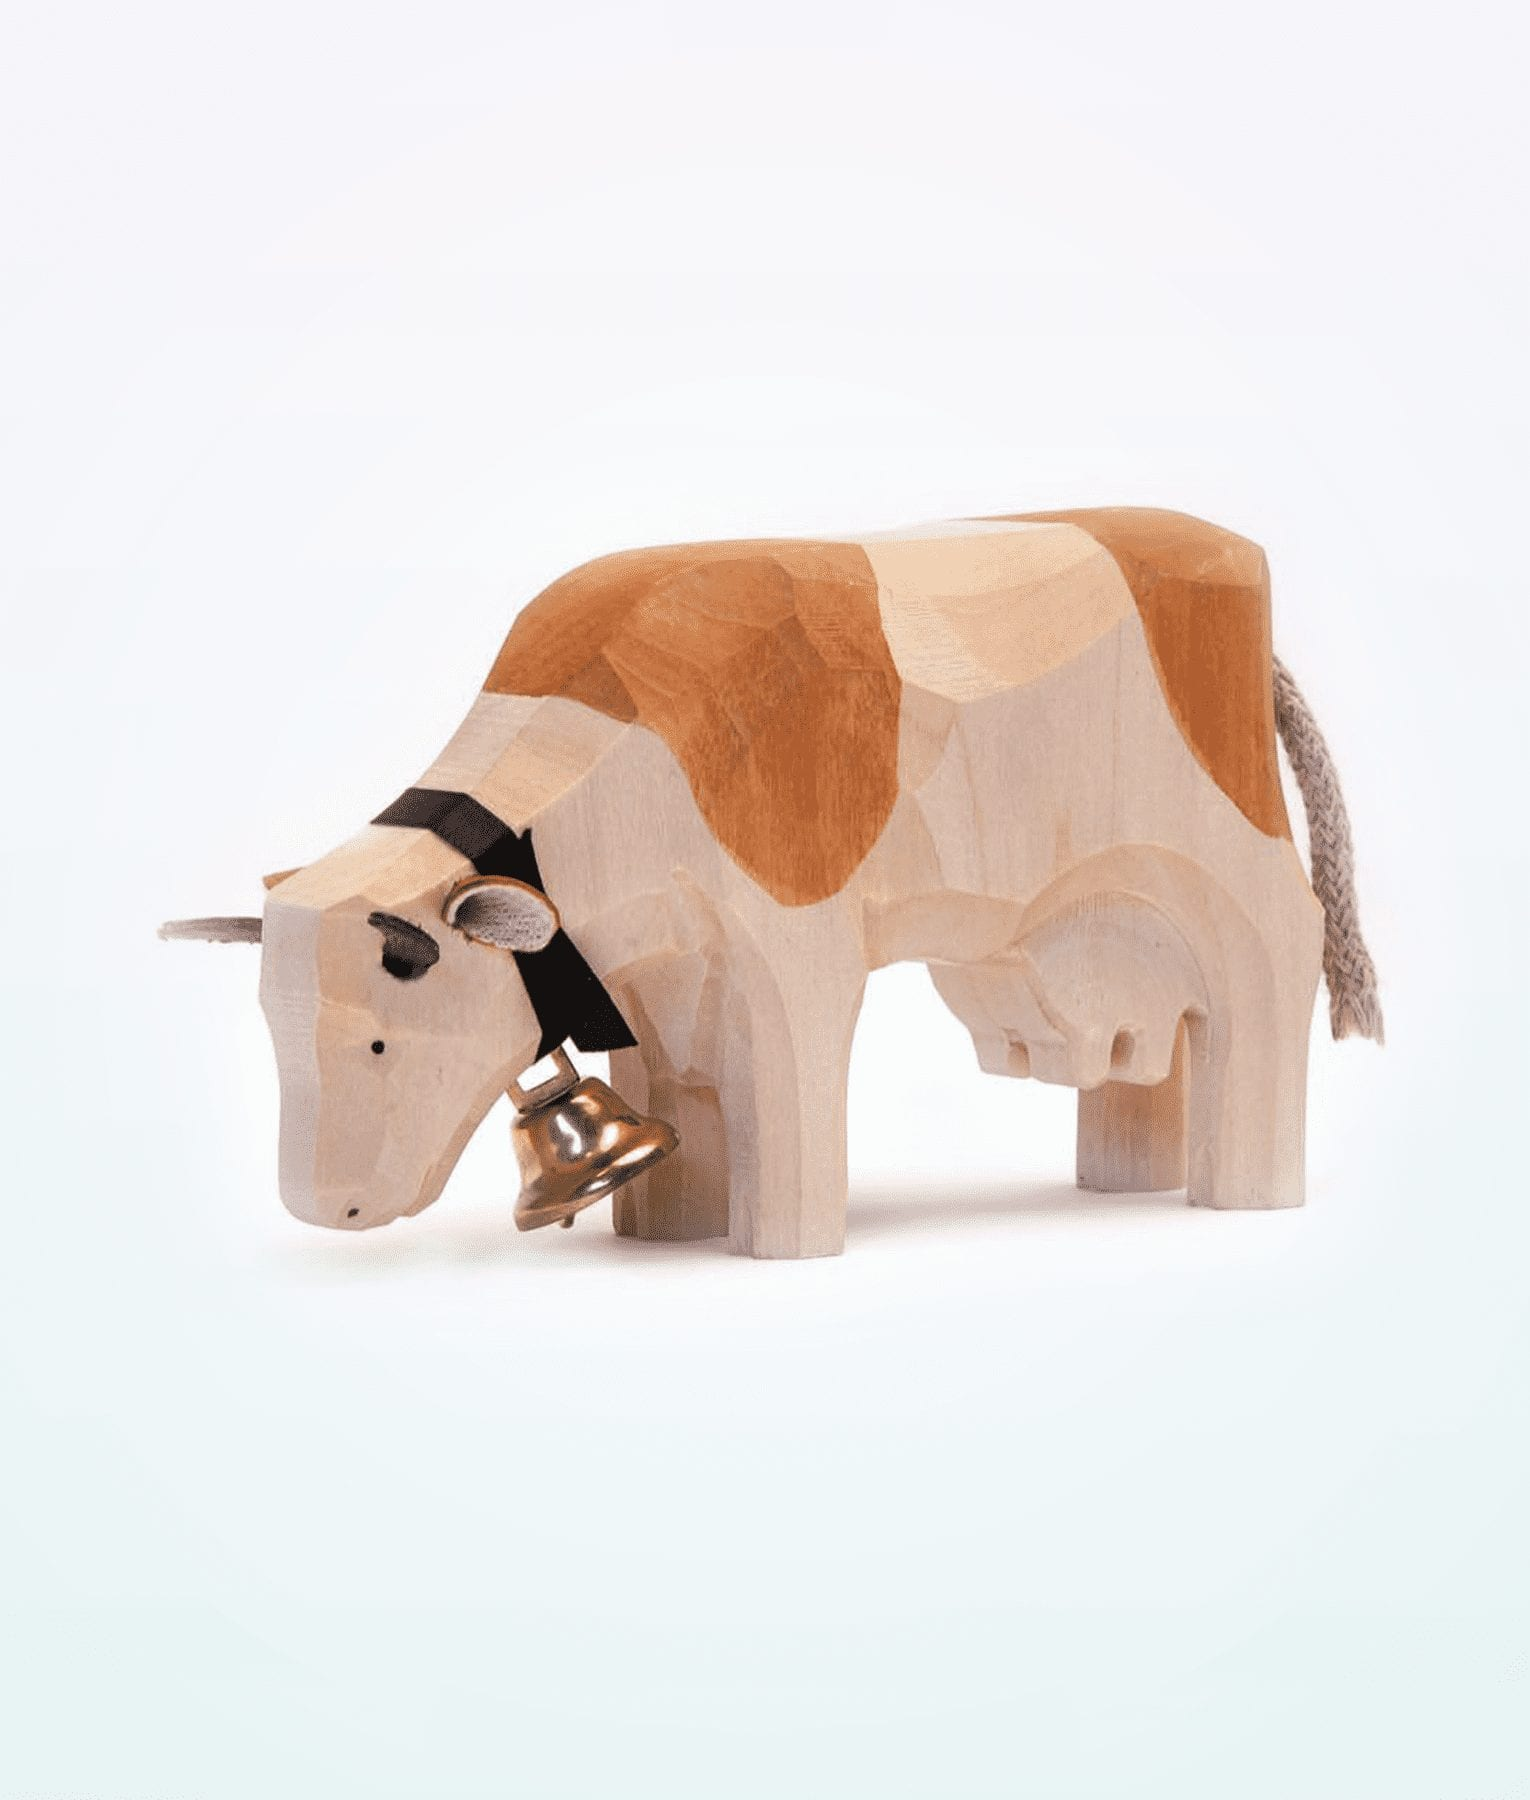 trauffer-wooden-cow-edition-1938